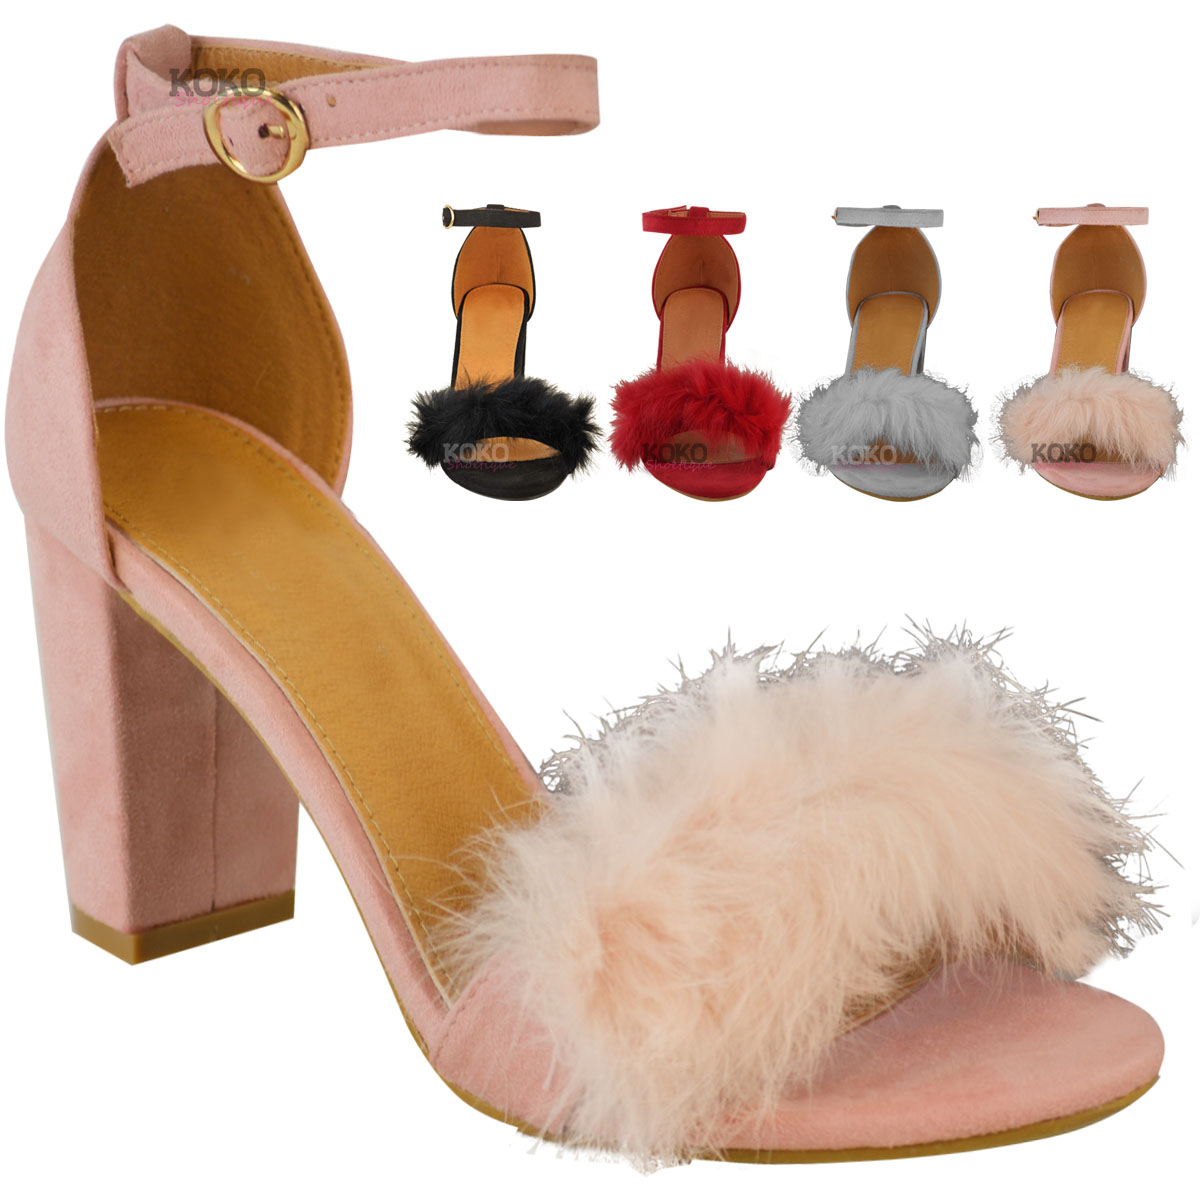 0da7cb21c0c Womens Ladies Faux Fur Fluffy Low Wedge Heel Sandals Strappy Party Shoes  Size UK